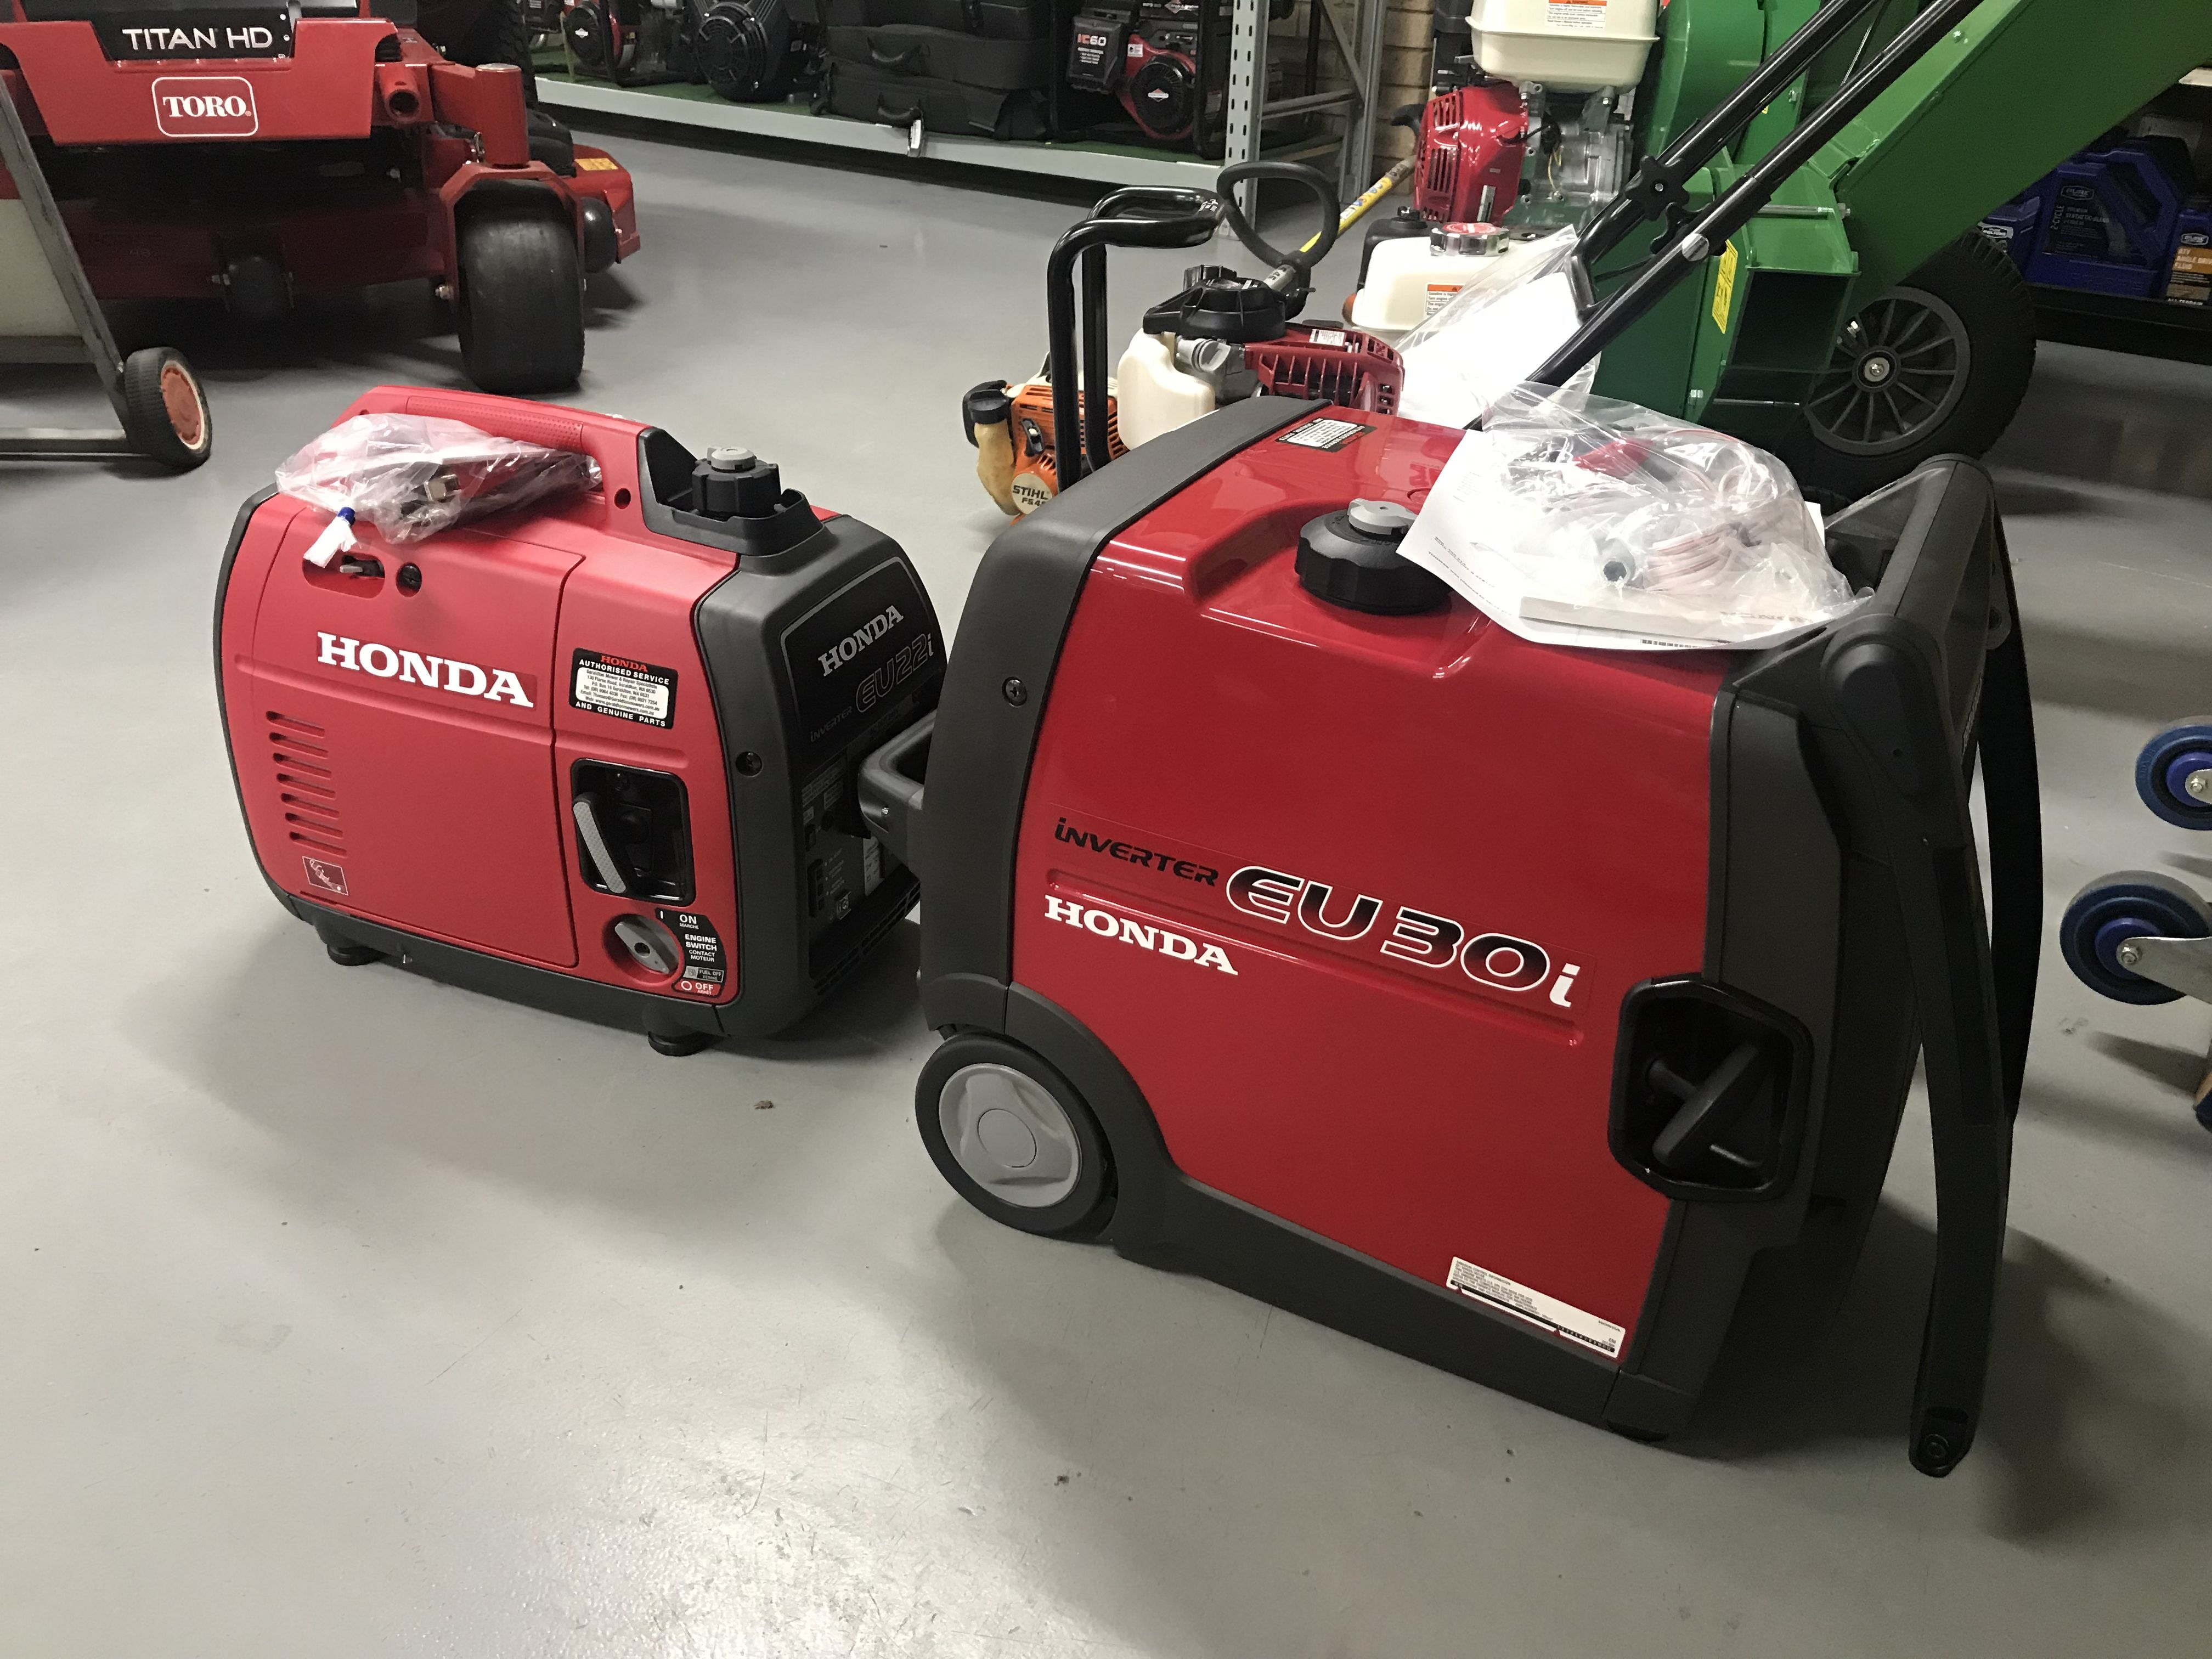 A few last Genny's getting picked up, looks like a nice long weekend for a camp out. We're closing today at 4pm, enjoy your break, back open on Tuesday.  . . . .  . . .  #honda #geraldton #geraldtonmowers #weareyardsinfront #hondapowerequipment #eu30i #eu22i #inverter #generator